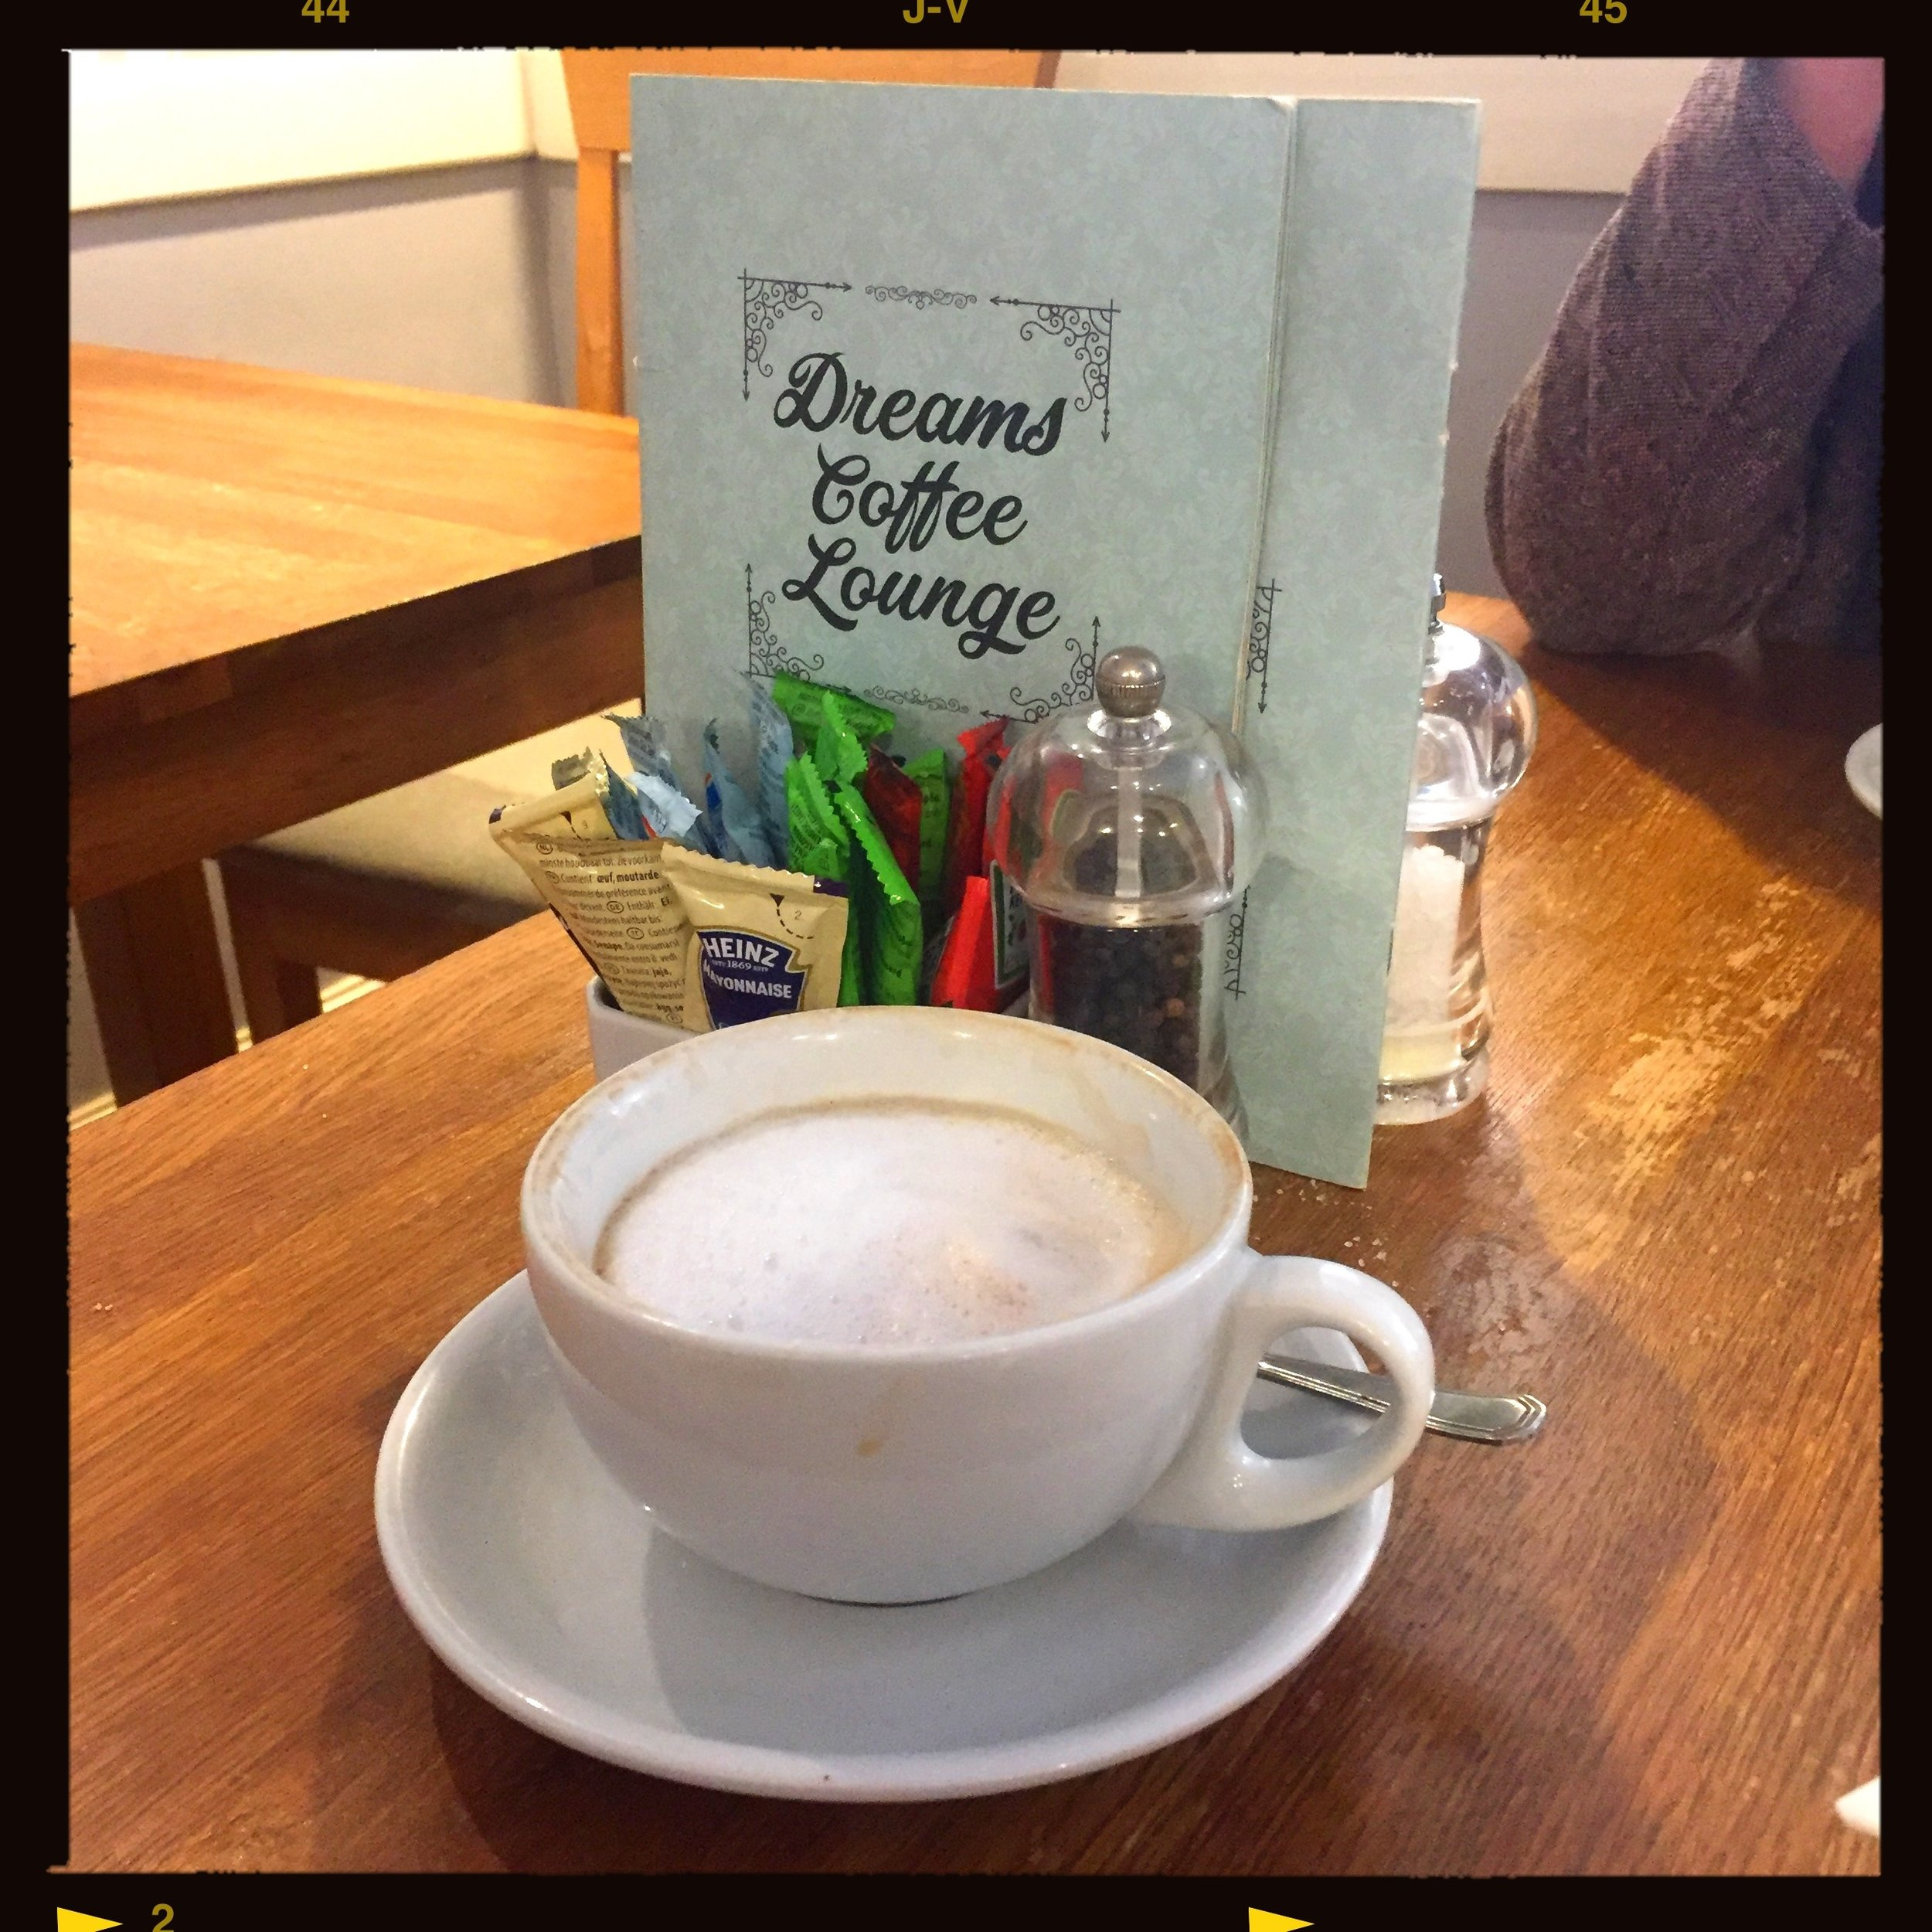 Saying goodbye to my dear, departed friend Stephen Loveless, at the Dreams Coffee Lounge, Northampton, UK